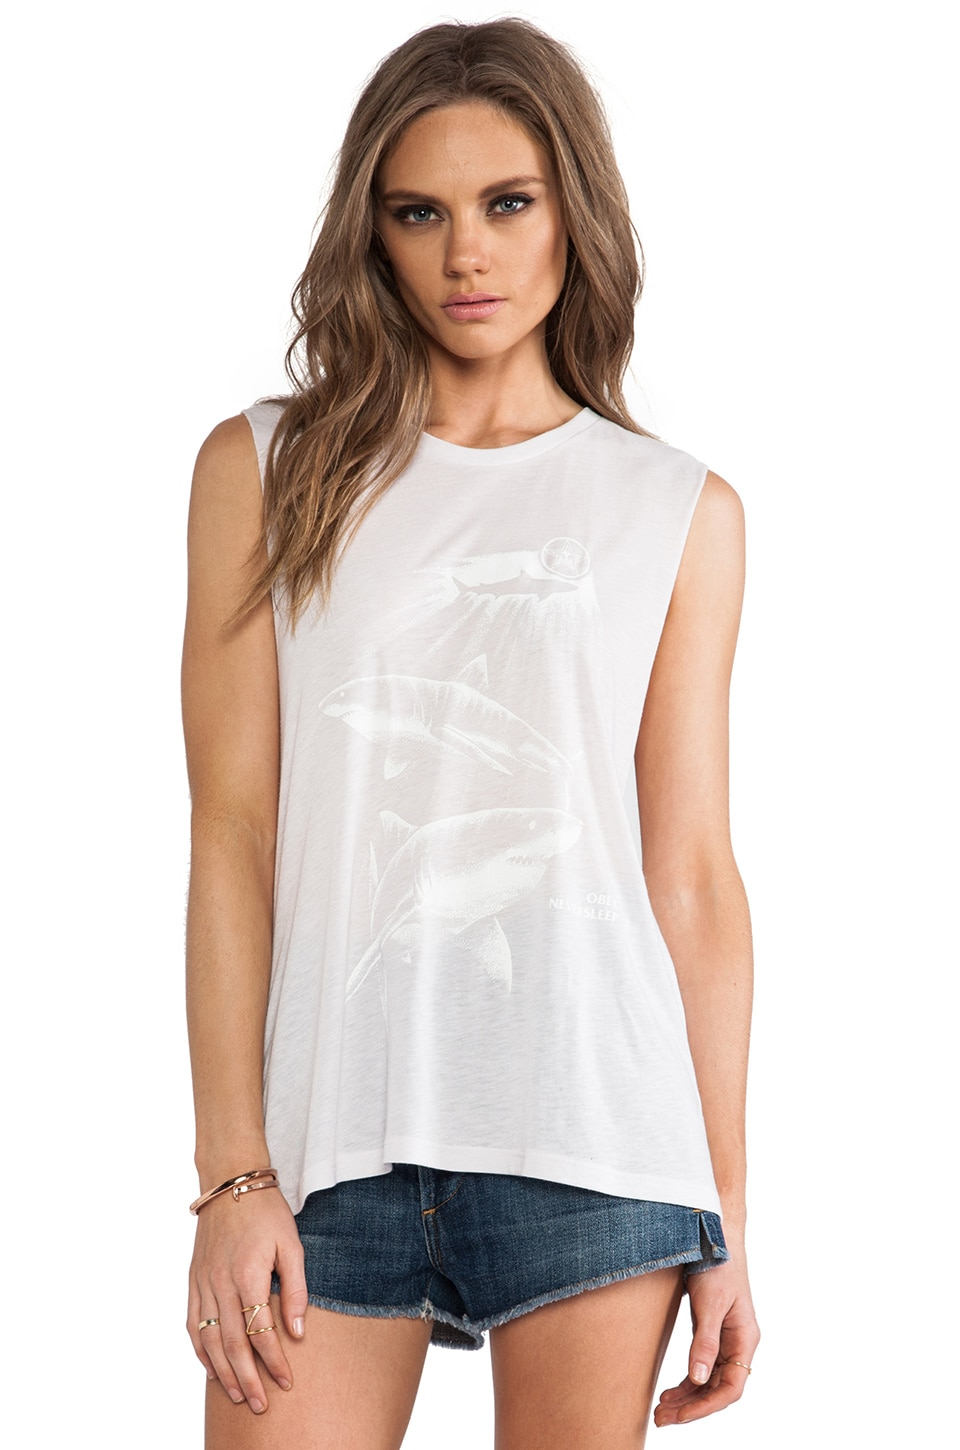 Obey Never Sleep Tank in Orchard Tint